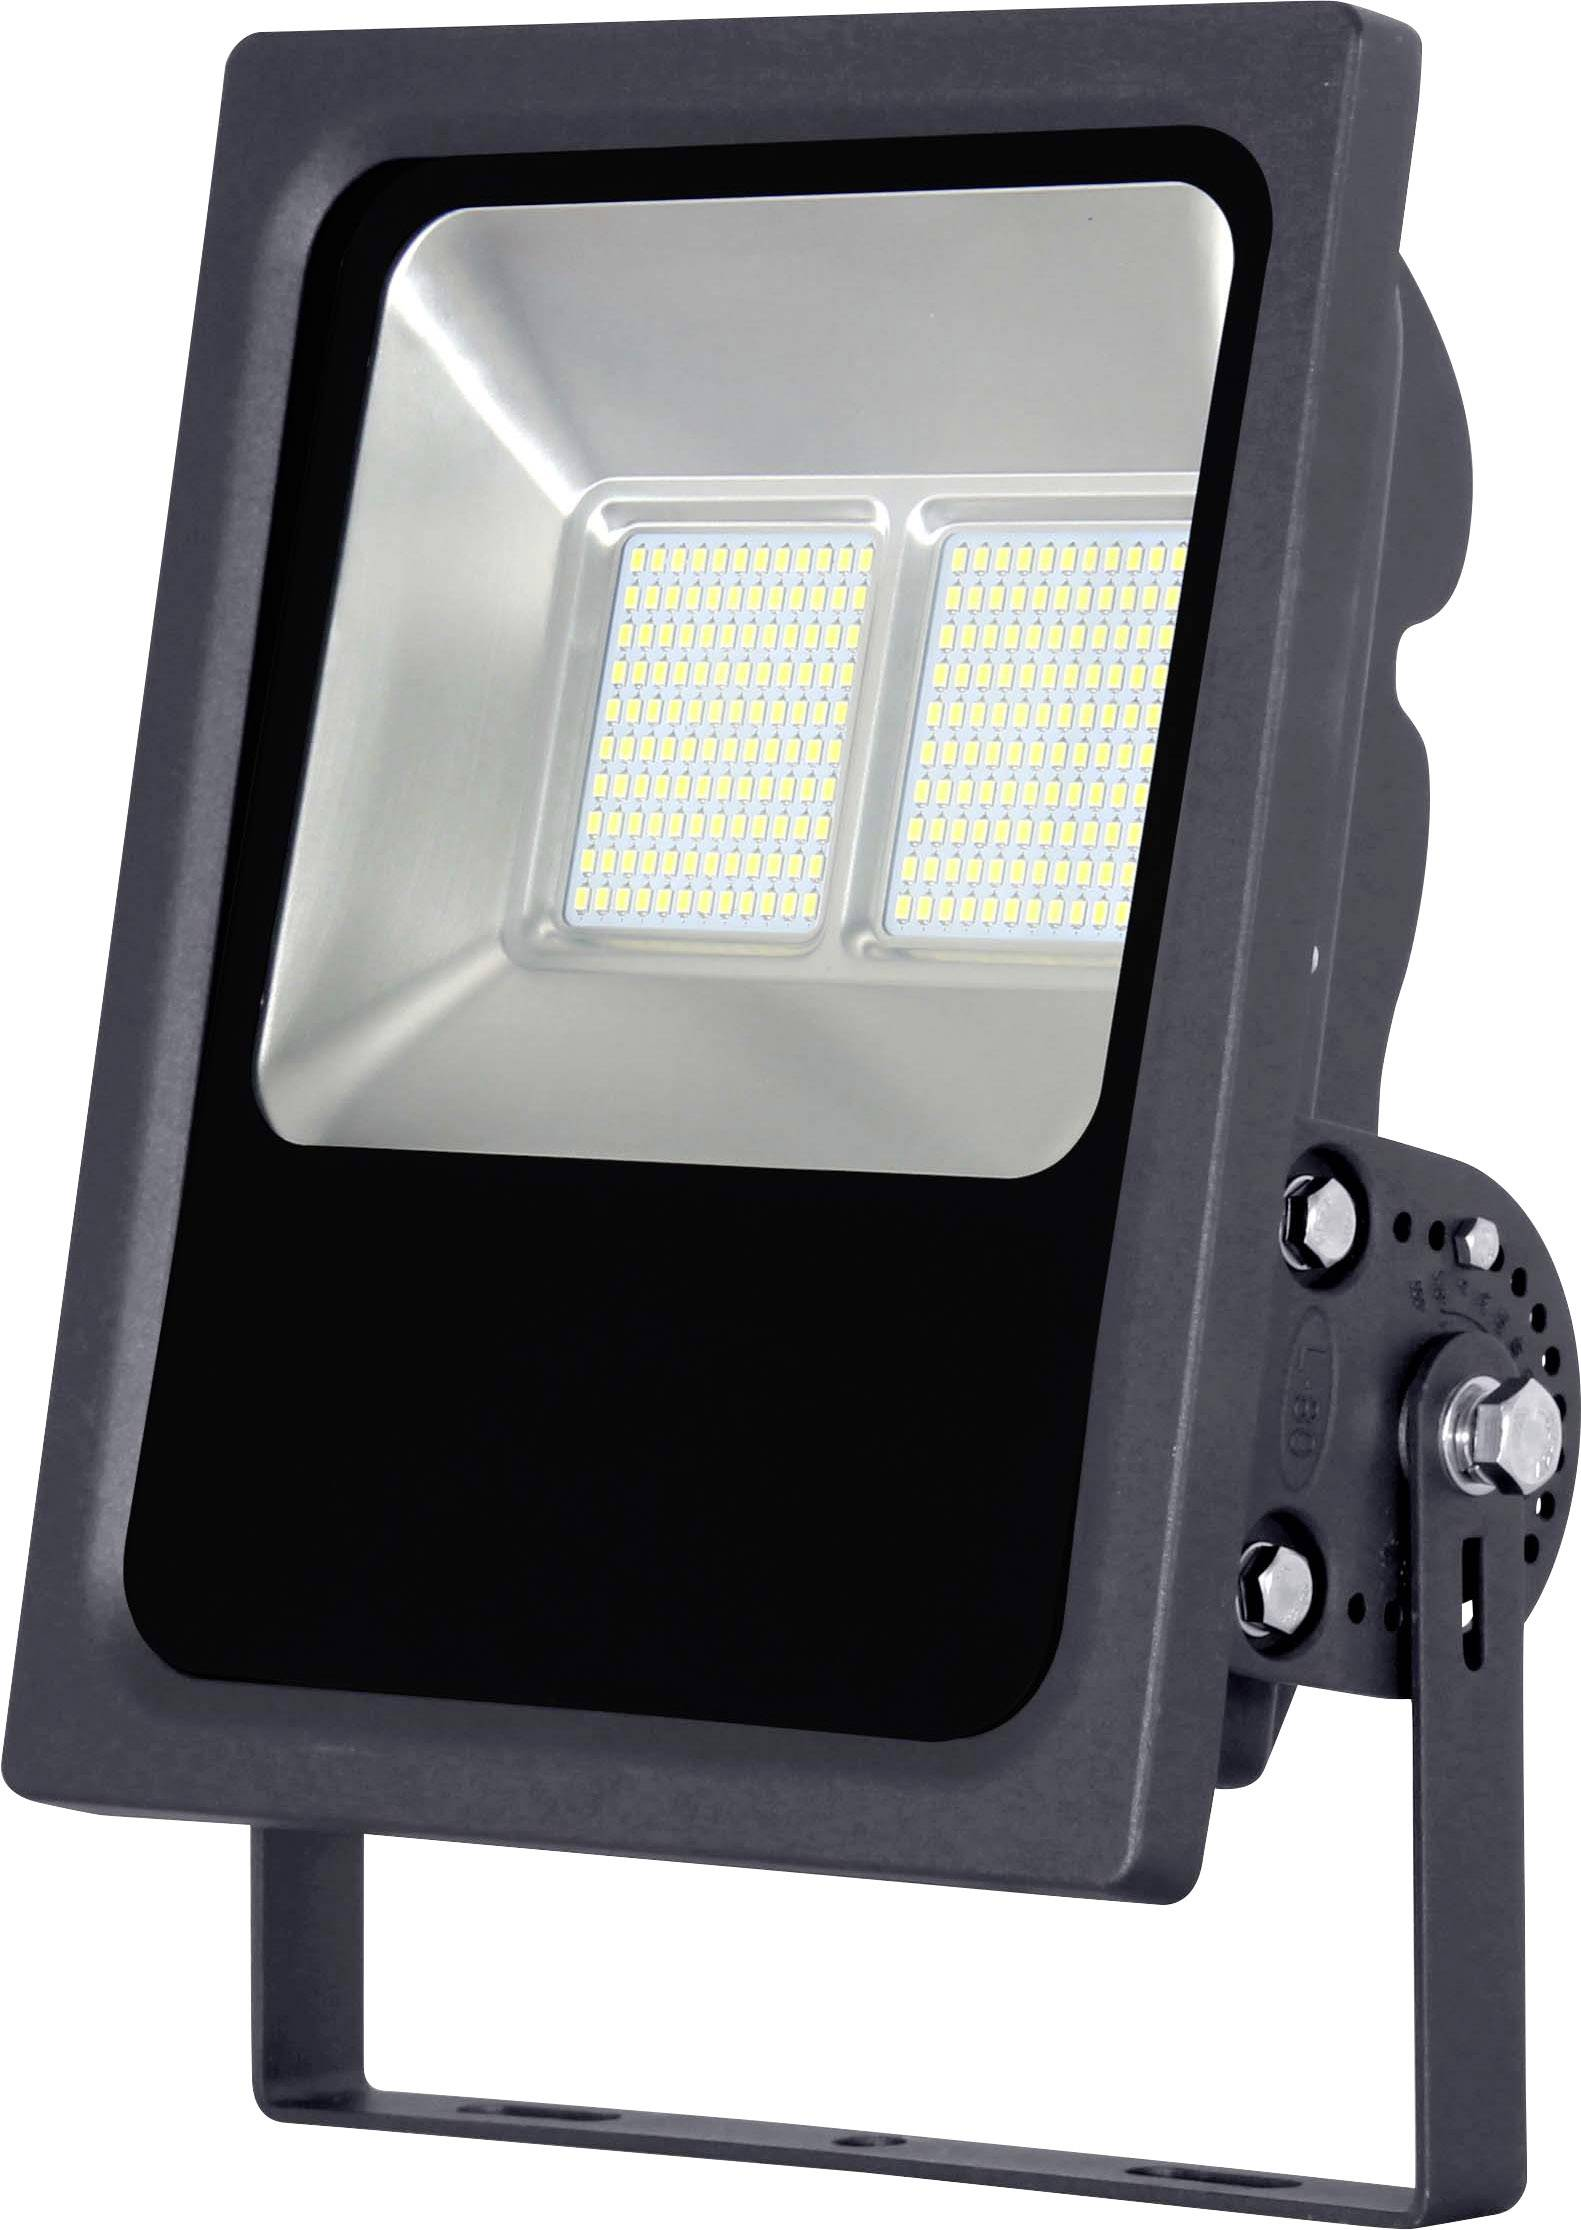 Projecteur Led Exterieur Forum Lumihome Flood 120w Projecteur Led Extérieur Conrad Fr